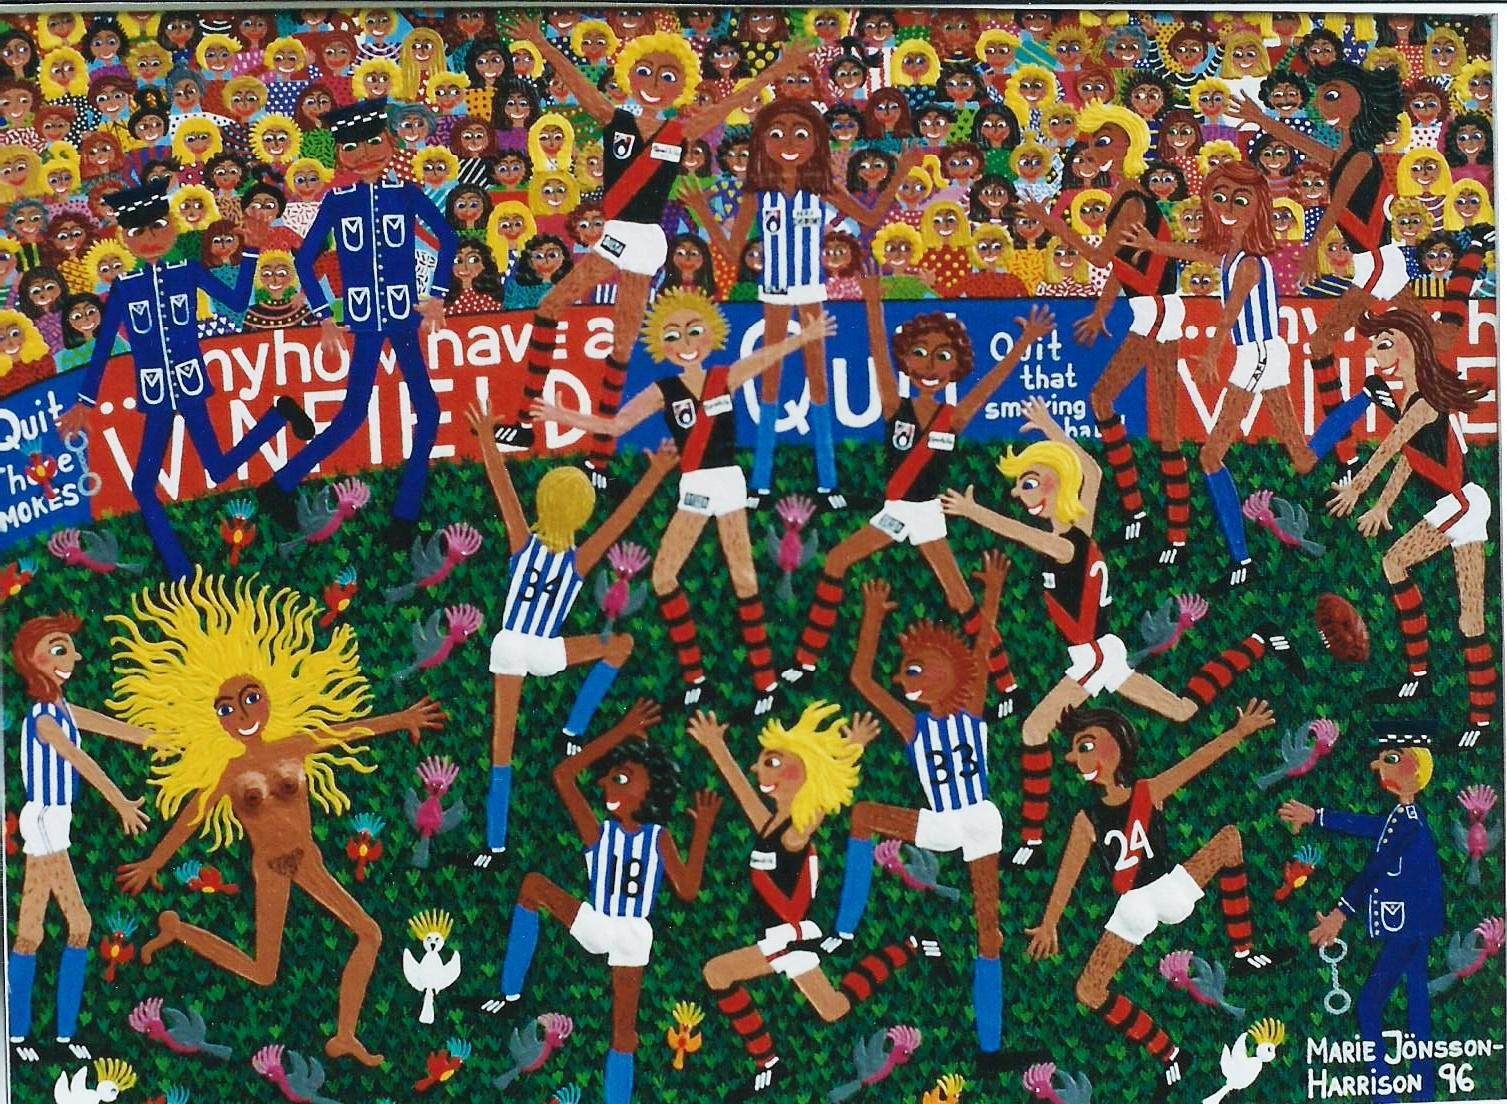 painting-of-Football-Aussie-Rules-painting-St-Kilda-and-North-Melbourne-by-artist-Marie-Jonsson-Harrison-featuring-Troy-Gray